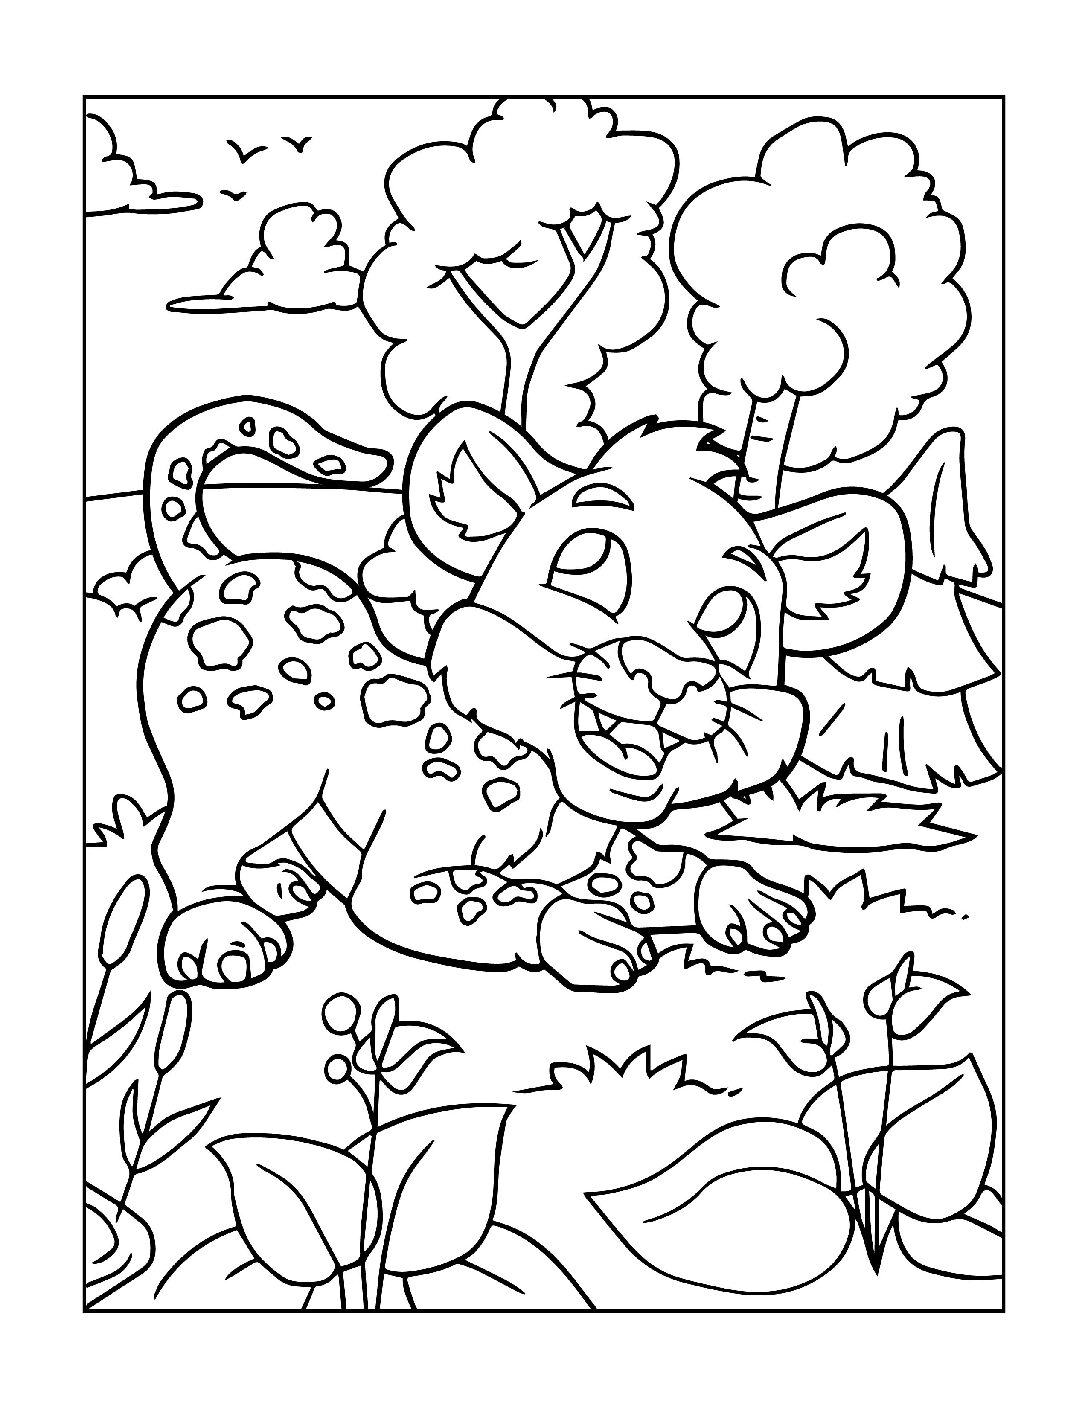 coloring pages zoo free printable zoo animals colouring pages just family fun coloring pages zoo